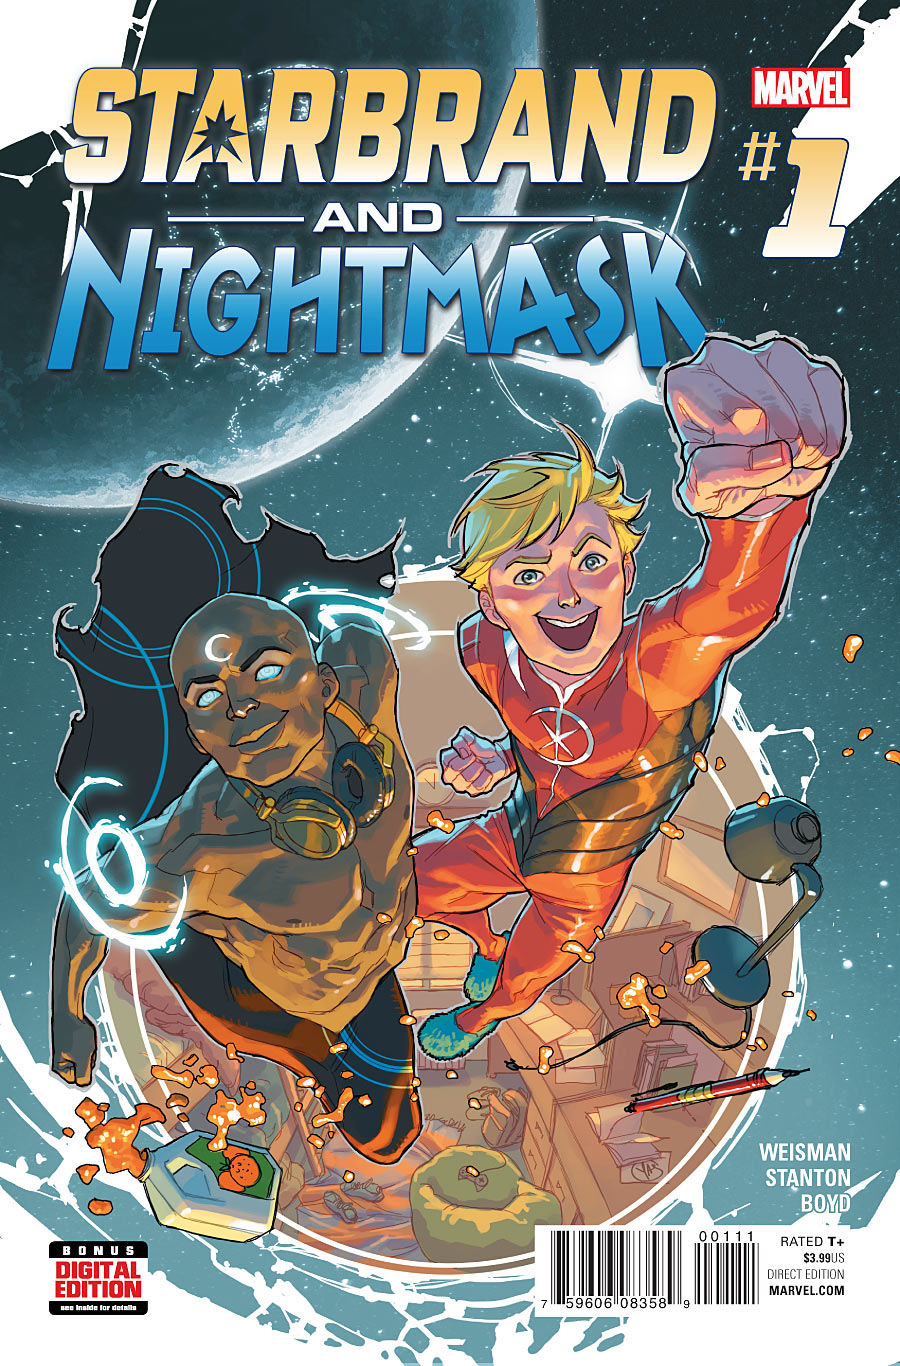 Image result for starbrand and nightmask vol. 1